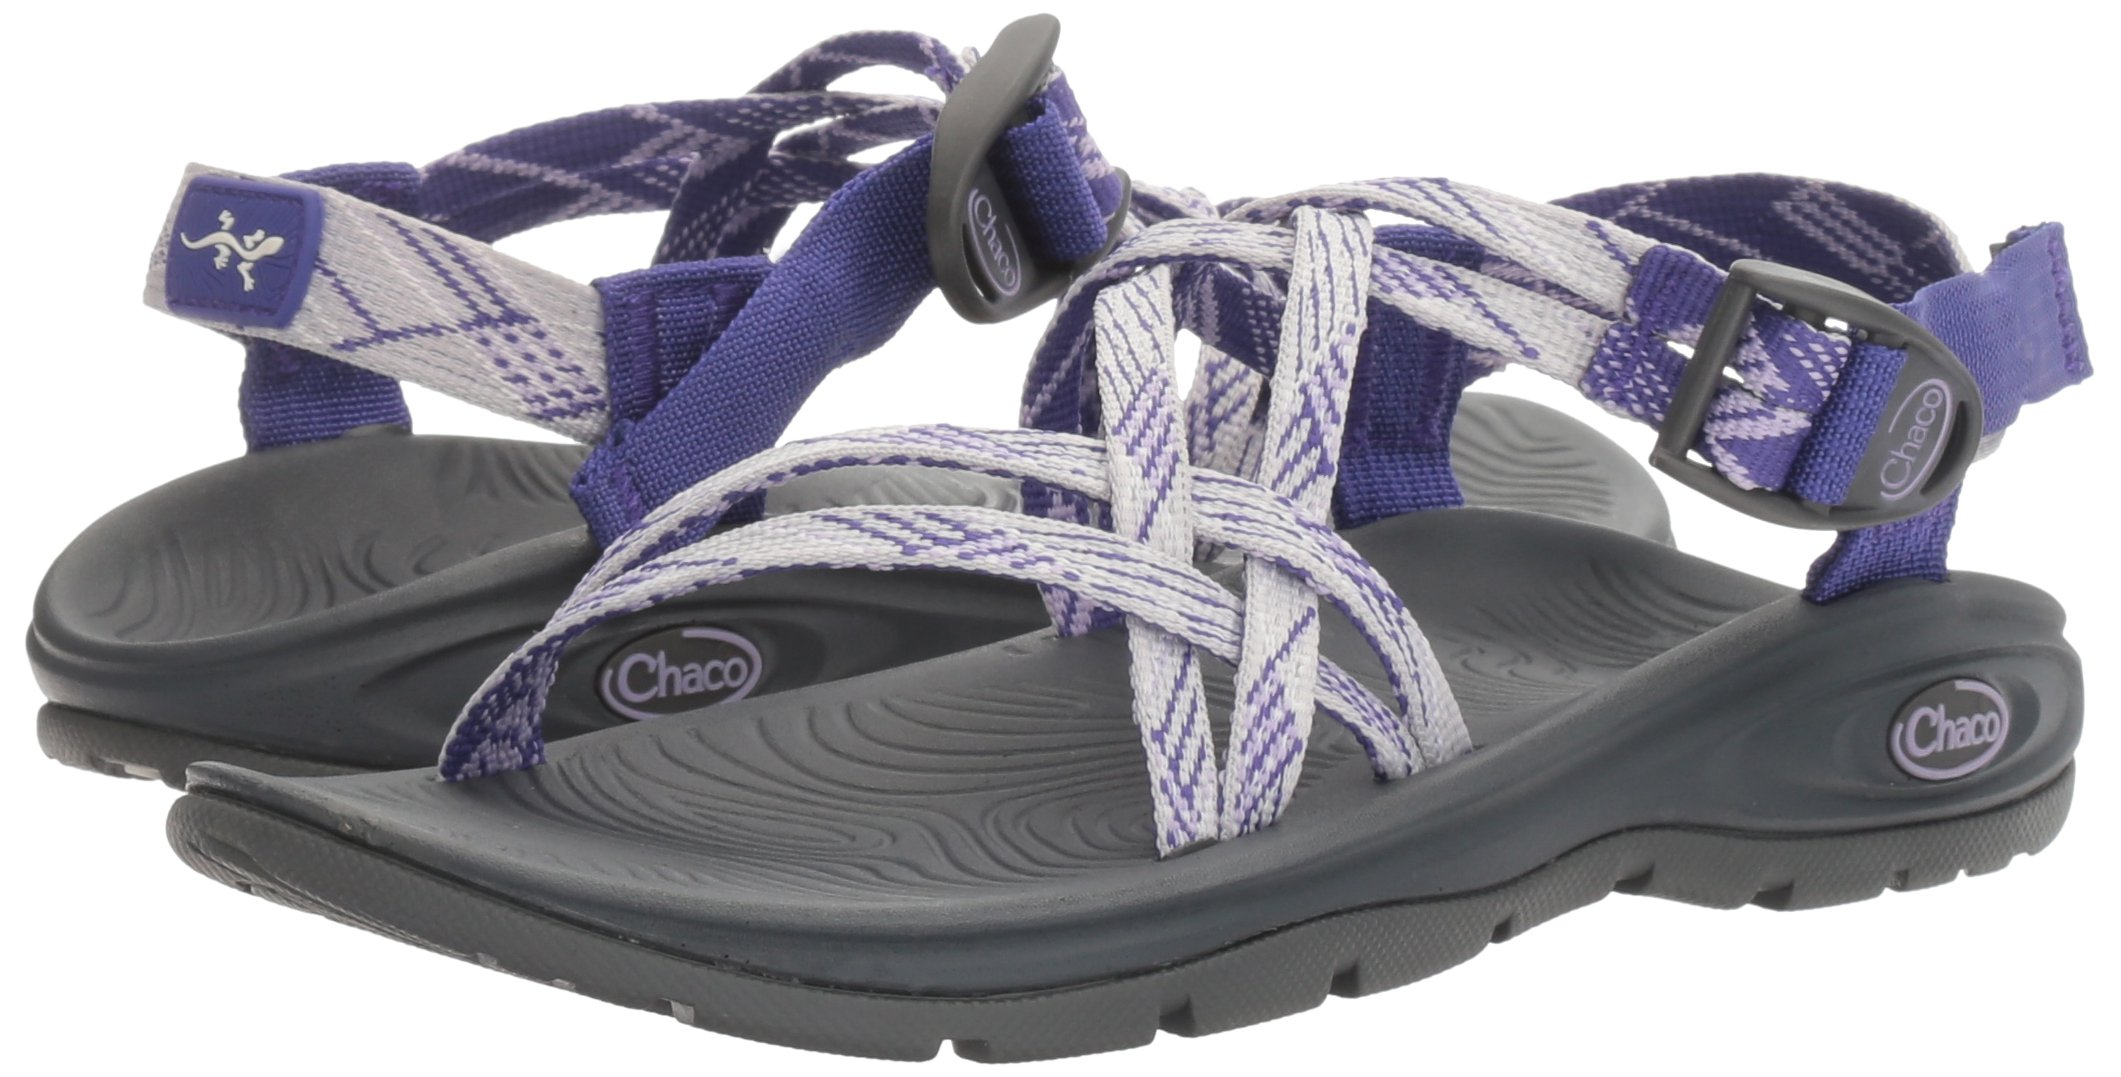 Chaco Women's Zvolv X Athletic Sandal, Lavender Liberty, 6 M US by Chaco (Image #6)